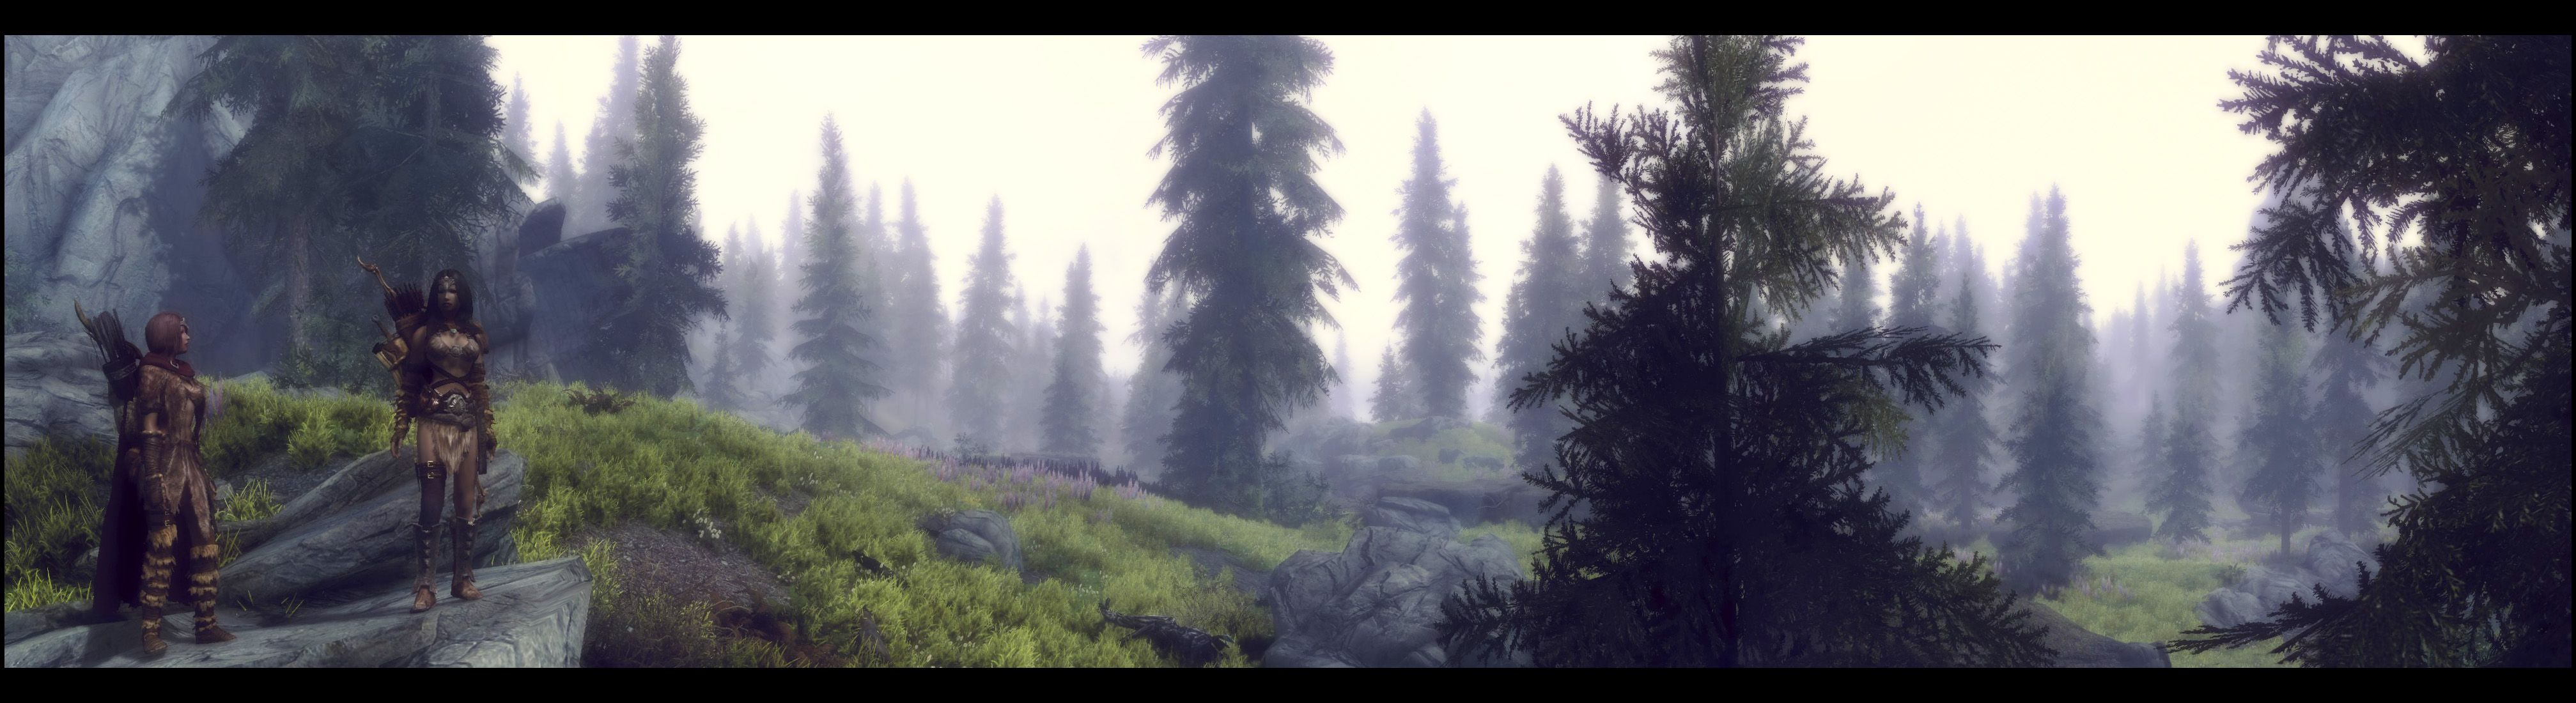 Skyrim Panorama shot.  Uses a custom ENB mod based off of the Winds of the Nords ENB.  Also other mods for better vegetation etc.